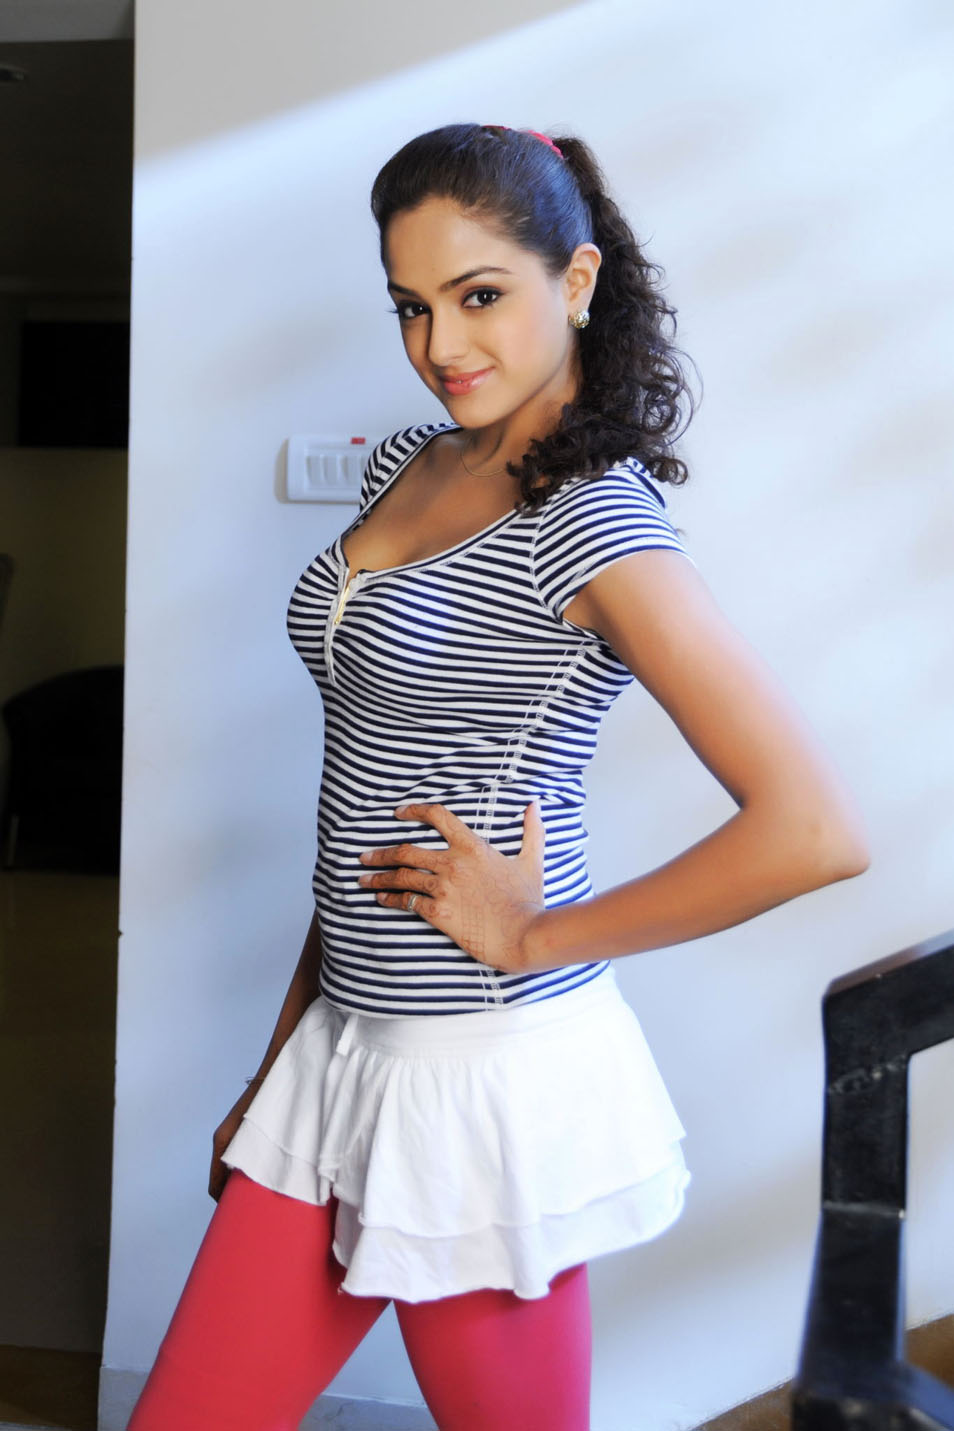 Watch Asmita Sood 	2011 video